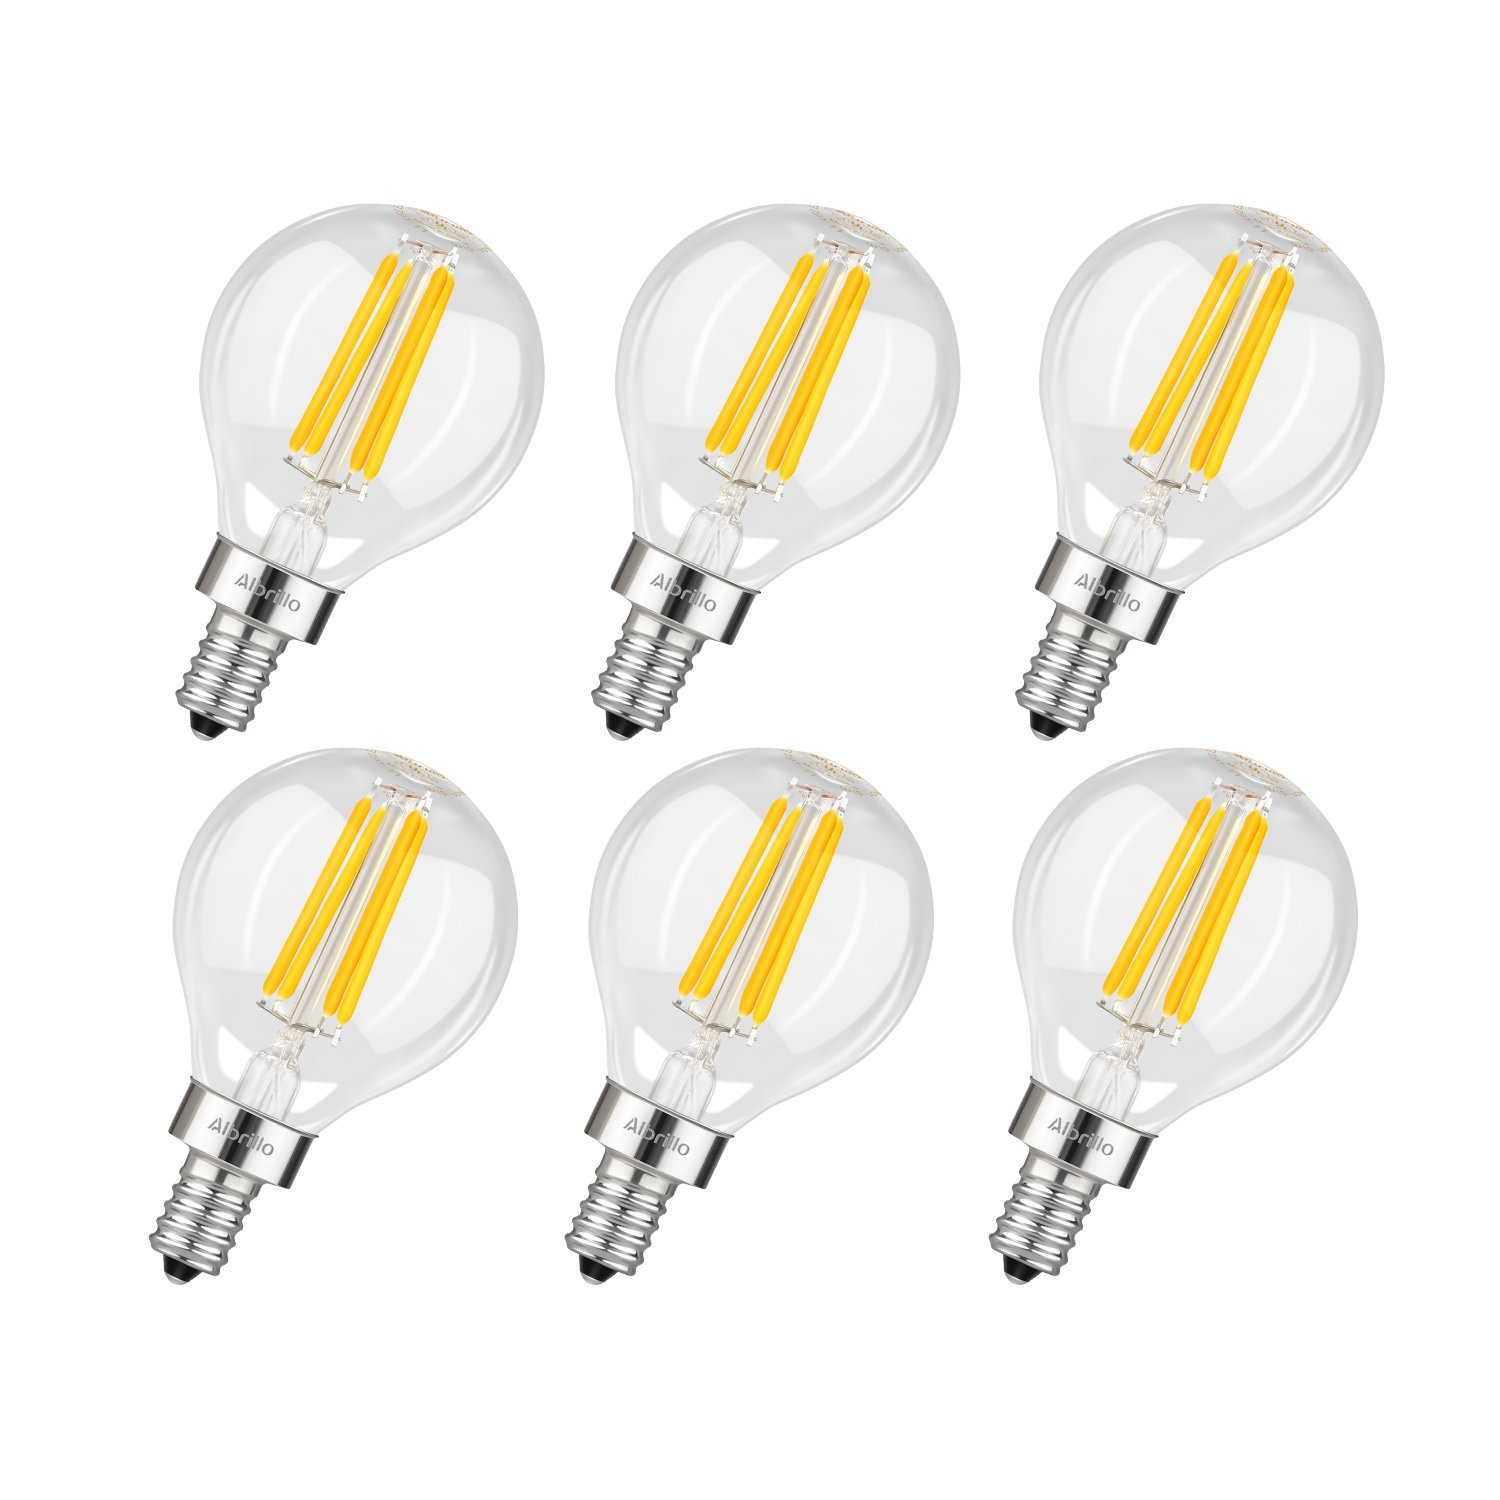 Albrillo E12 LED Candelabra Bulb 4W, 40 Watt Light Bulbs Equivalent, Warm White 2700K, 6 Pack